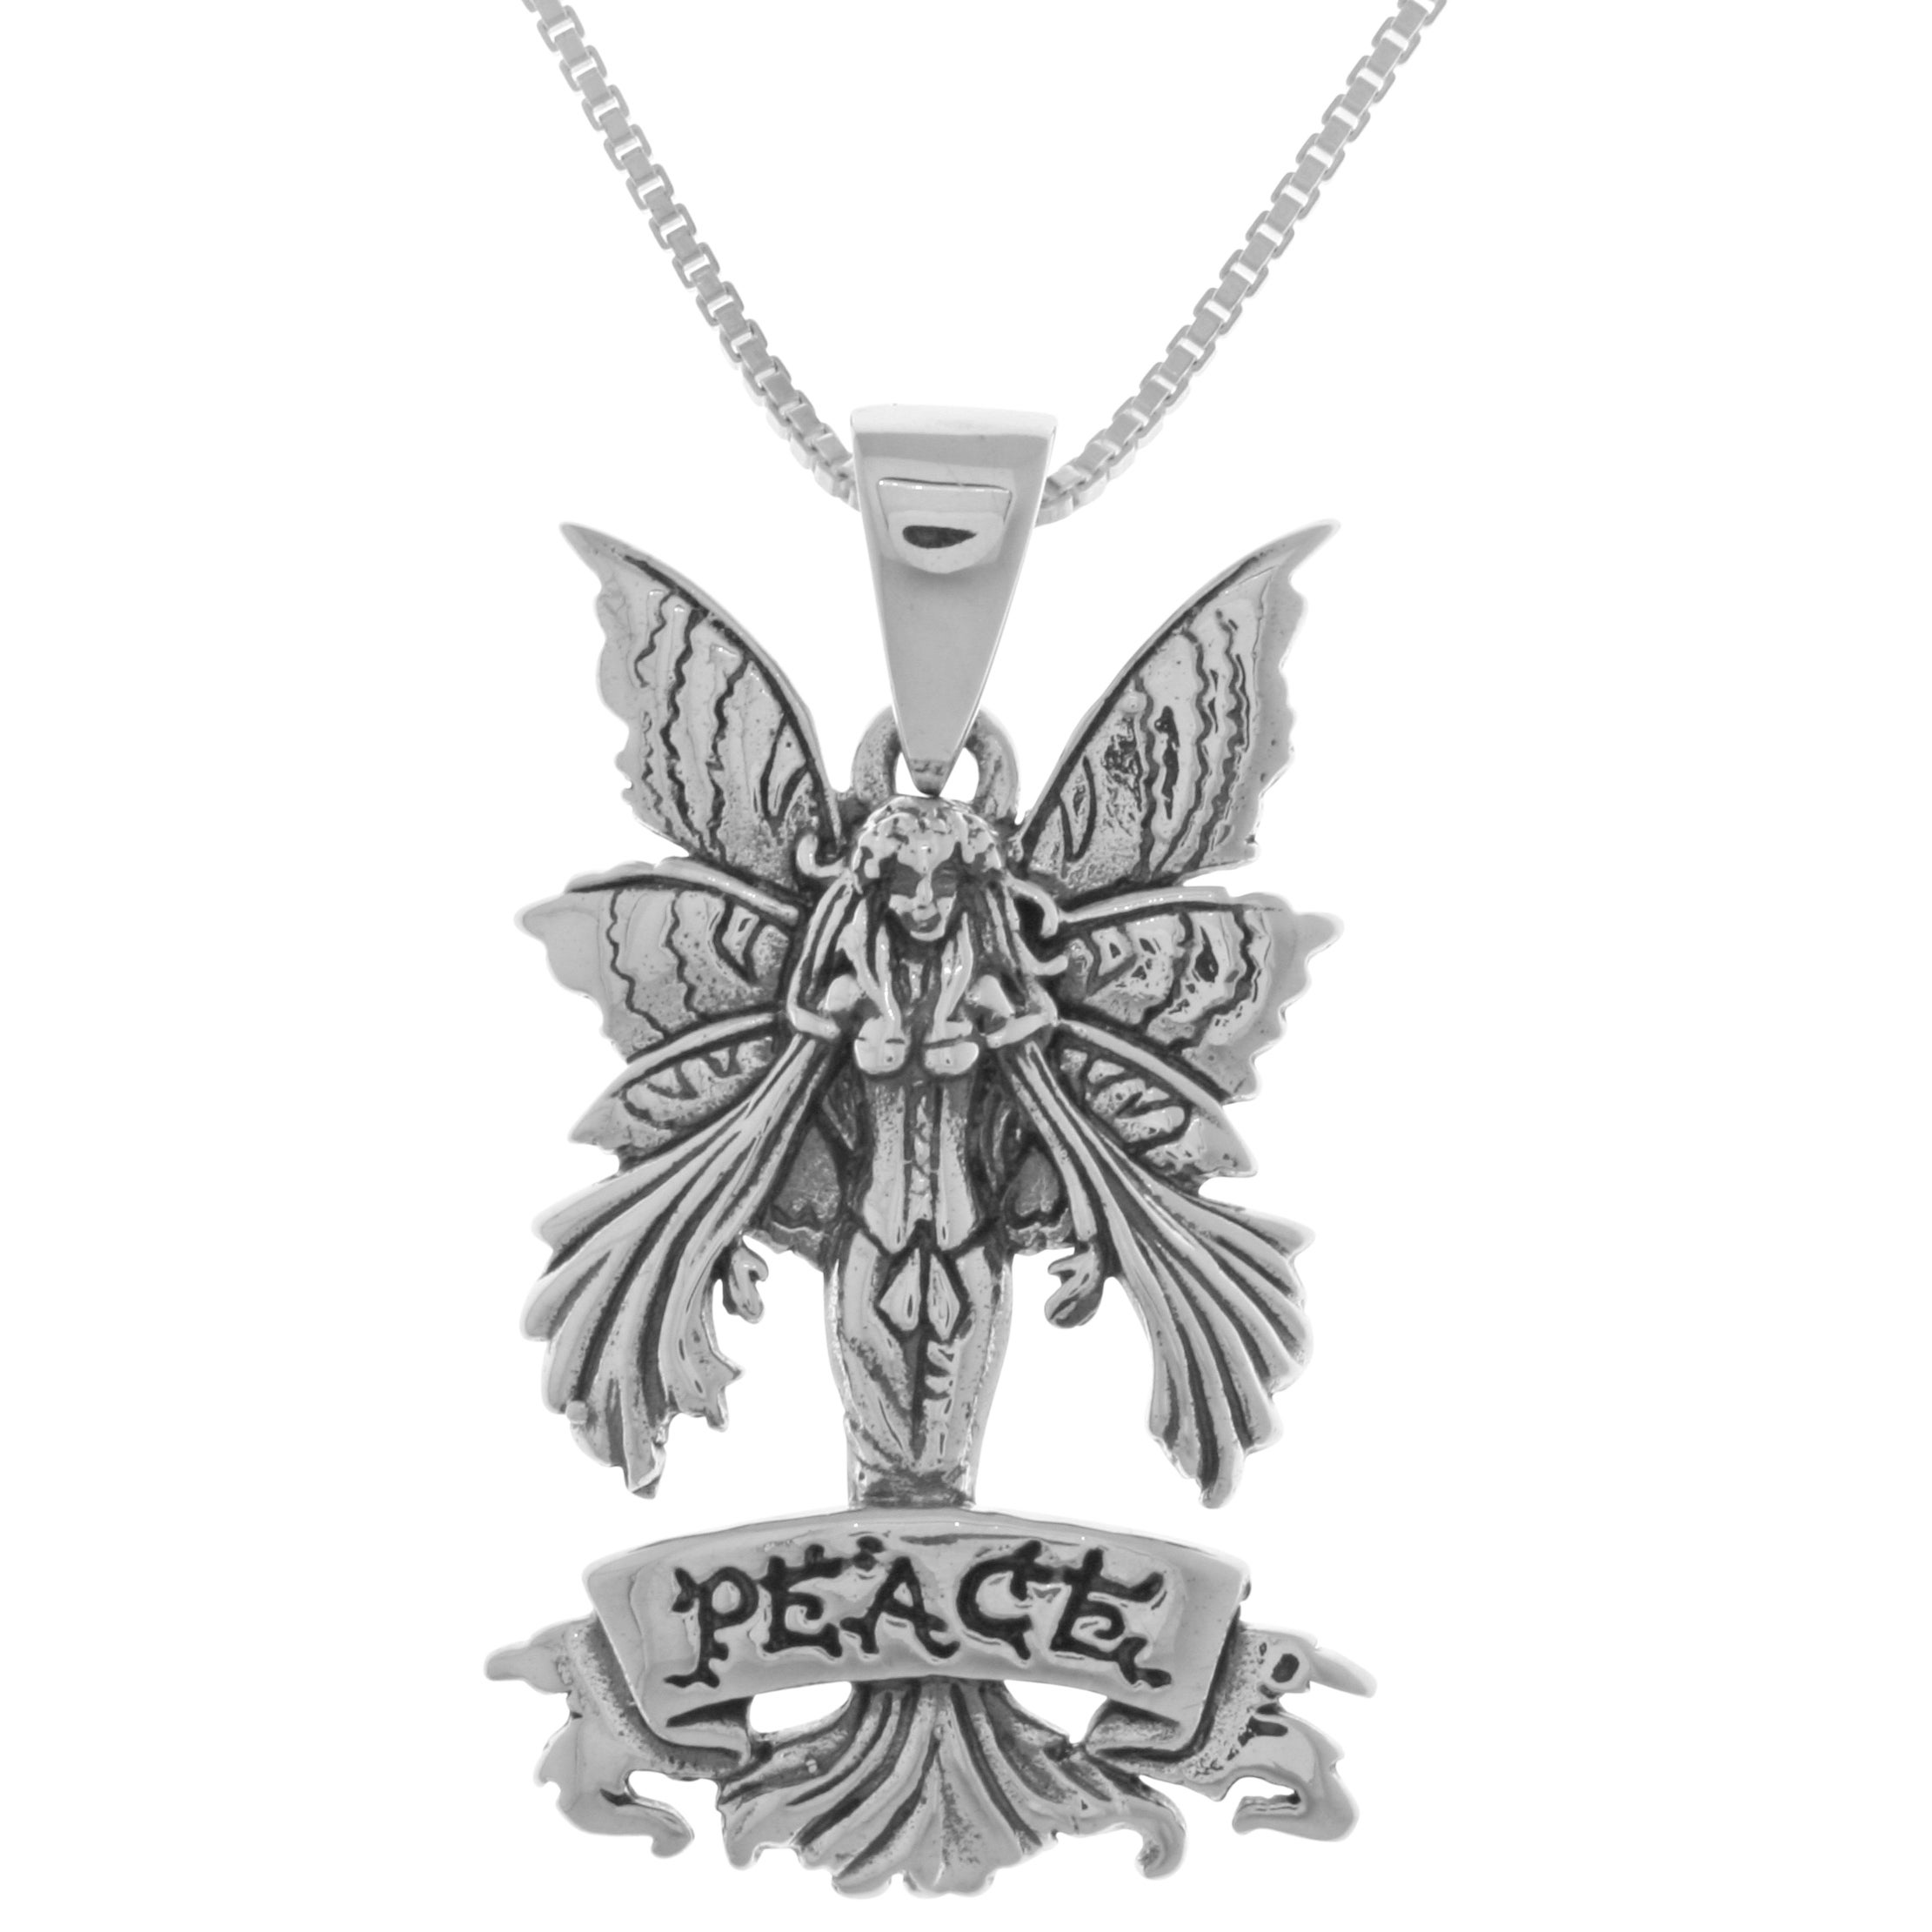 give peace speckle you product to jasper salt pendant necklace i my riot pink